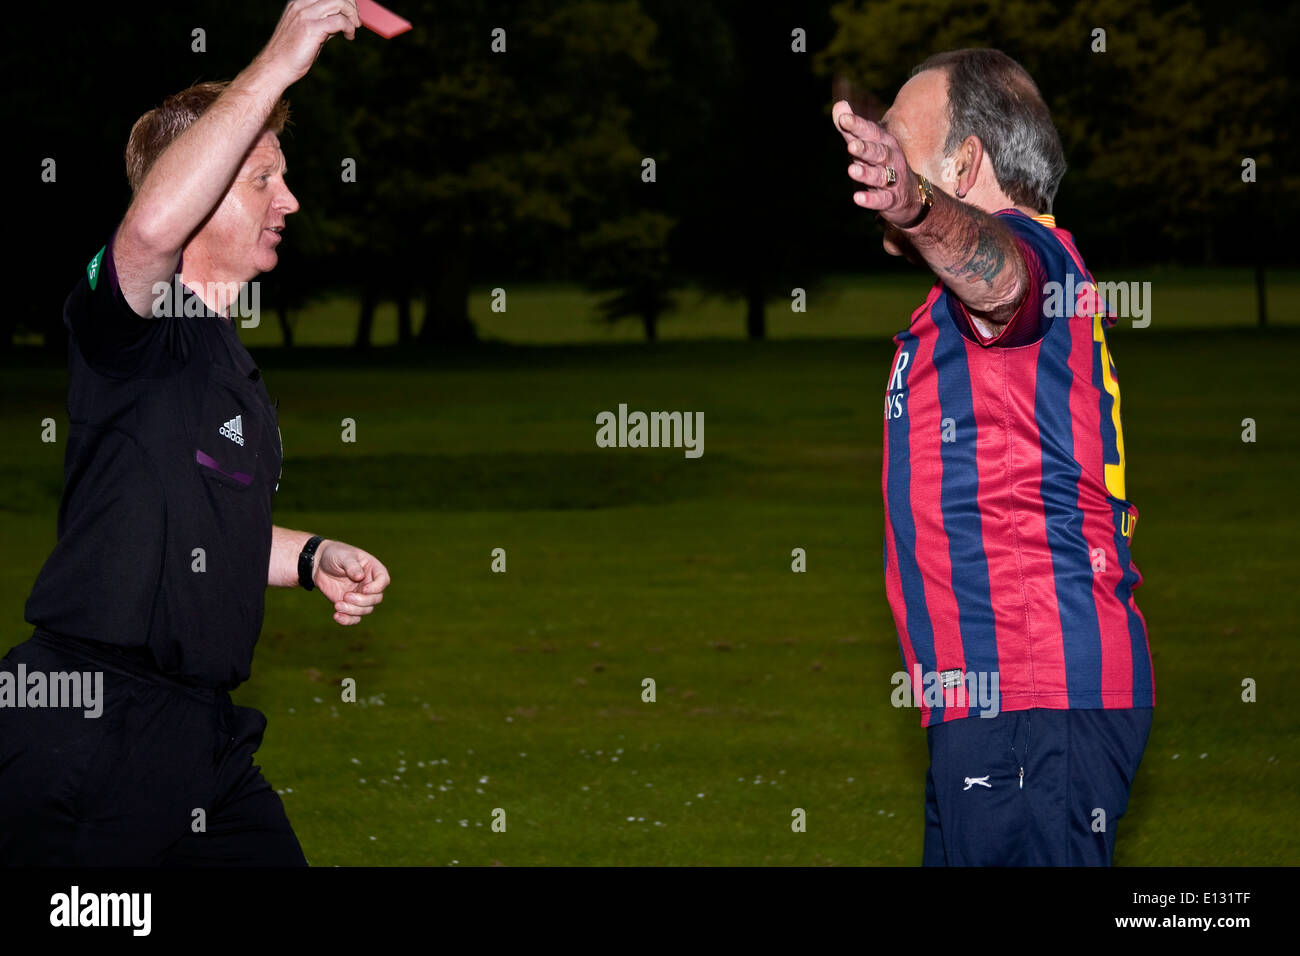 Referee holding up a red card sending off a football player during a fun event inside Camperdown Country Park in Dundee, UK - Stock Image